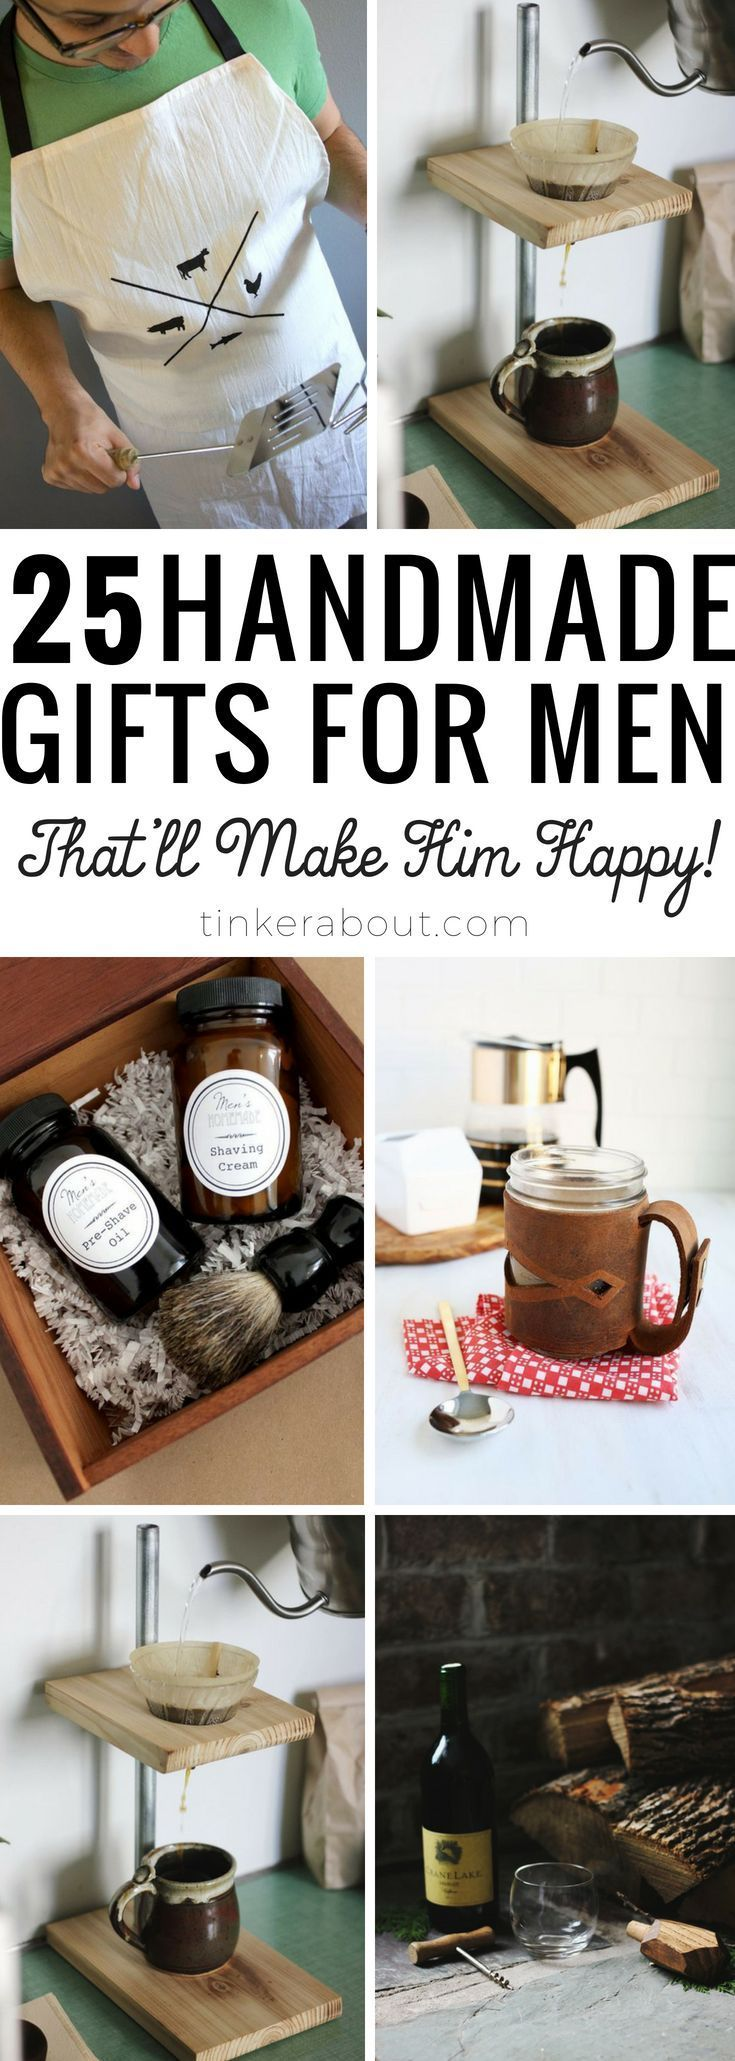 21 modern manly gifts for boyfriends perfect for